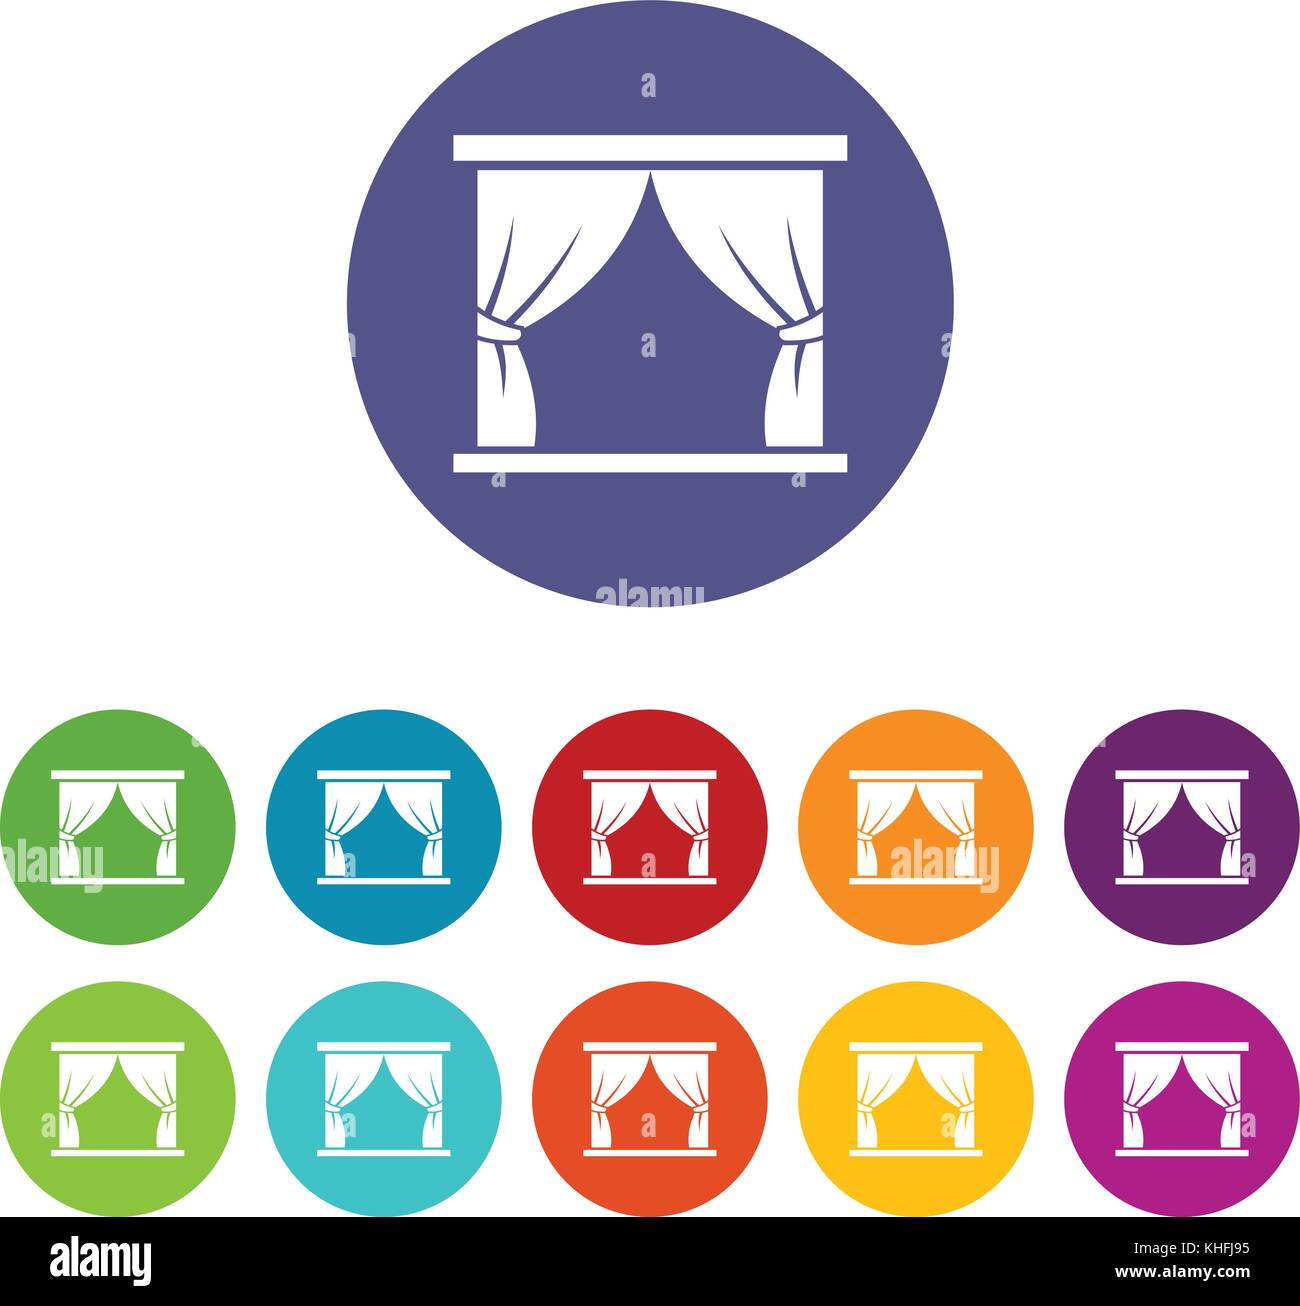 Curtain on stage set icons in different colors isolated on white background - Stock Vector